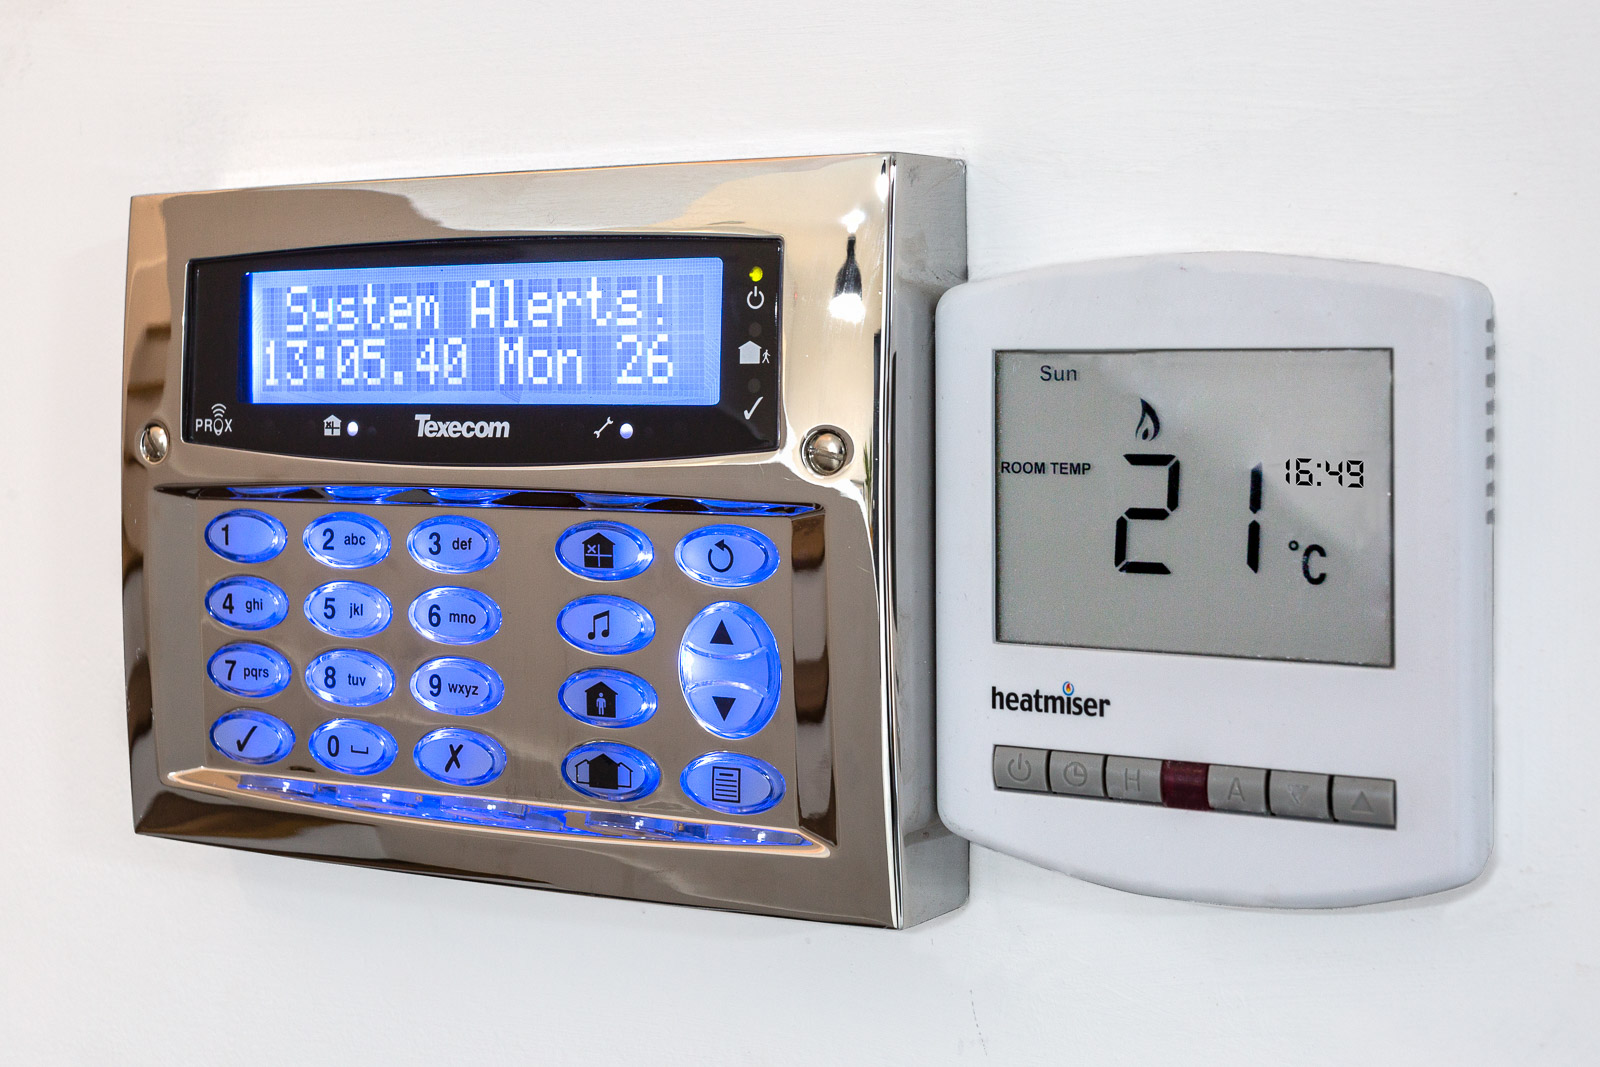 wall mounted control panel for modern house features such as heating, intruder alarm and entertainment systems